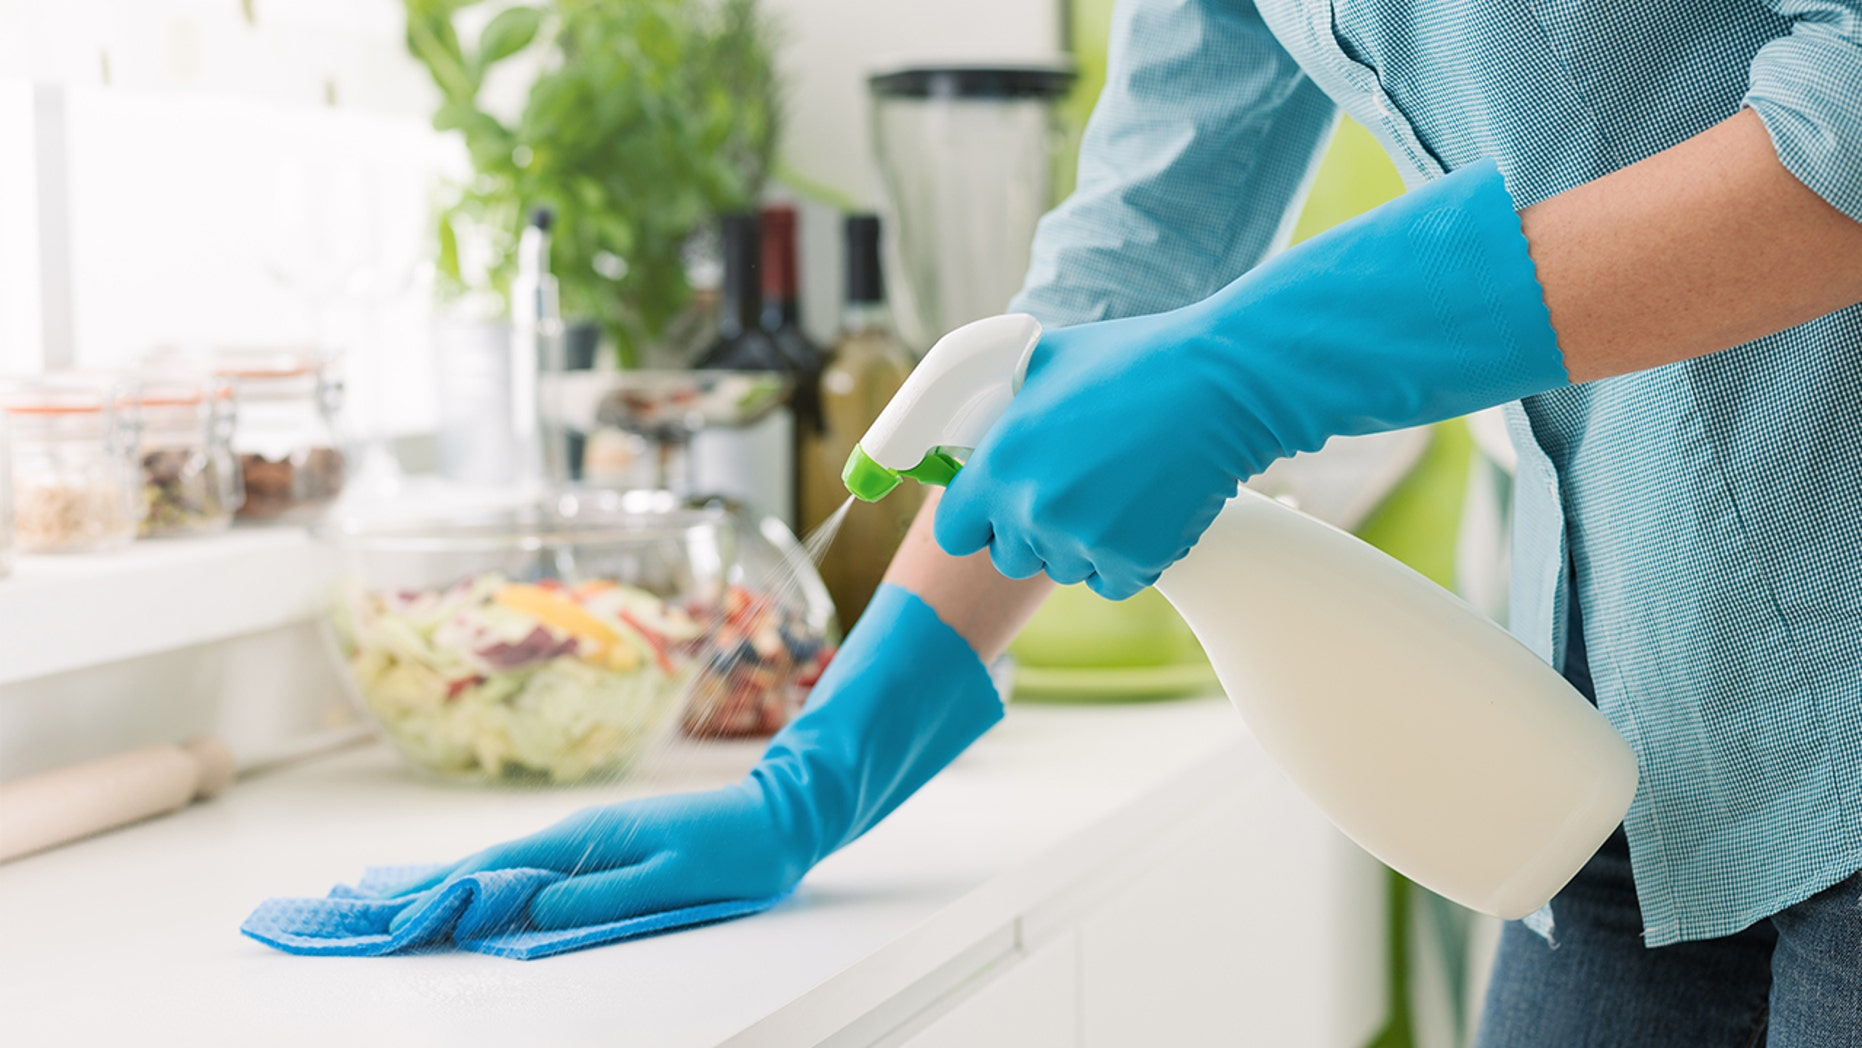 Don't make these common cleaning mistakes.